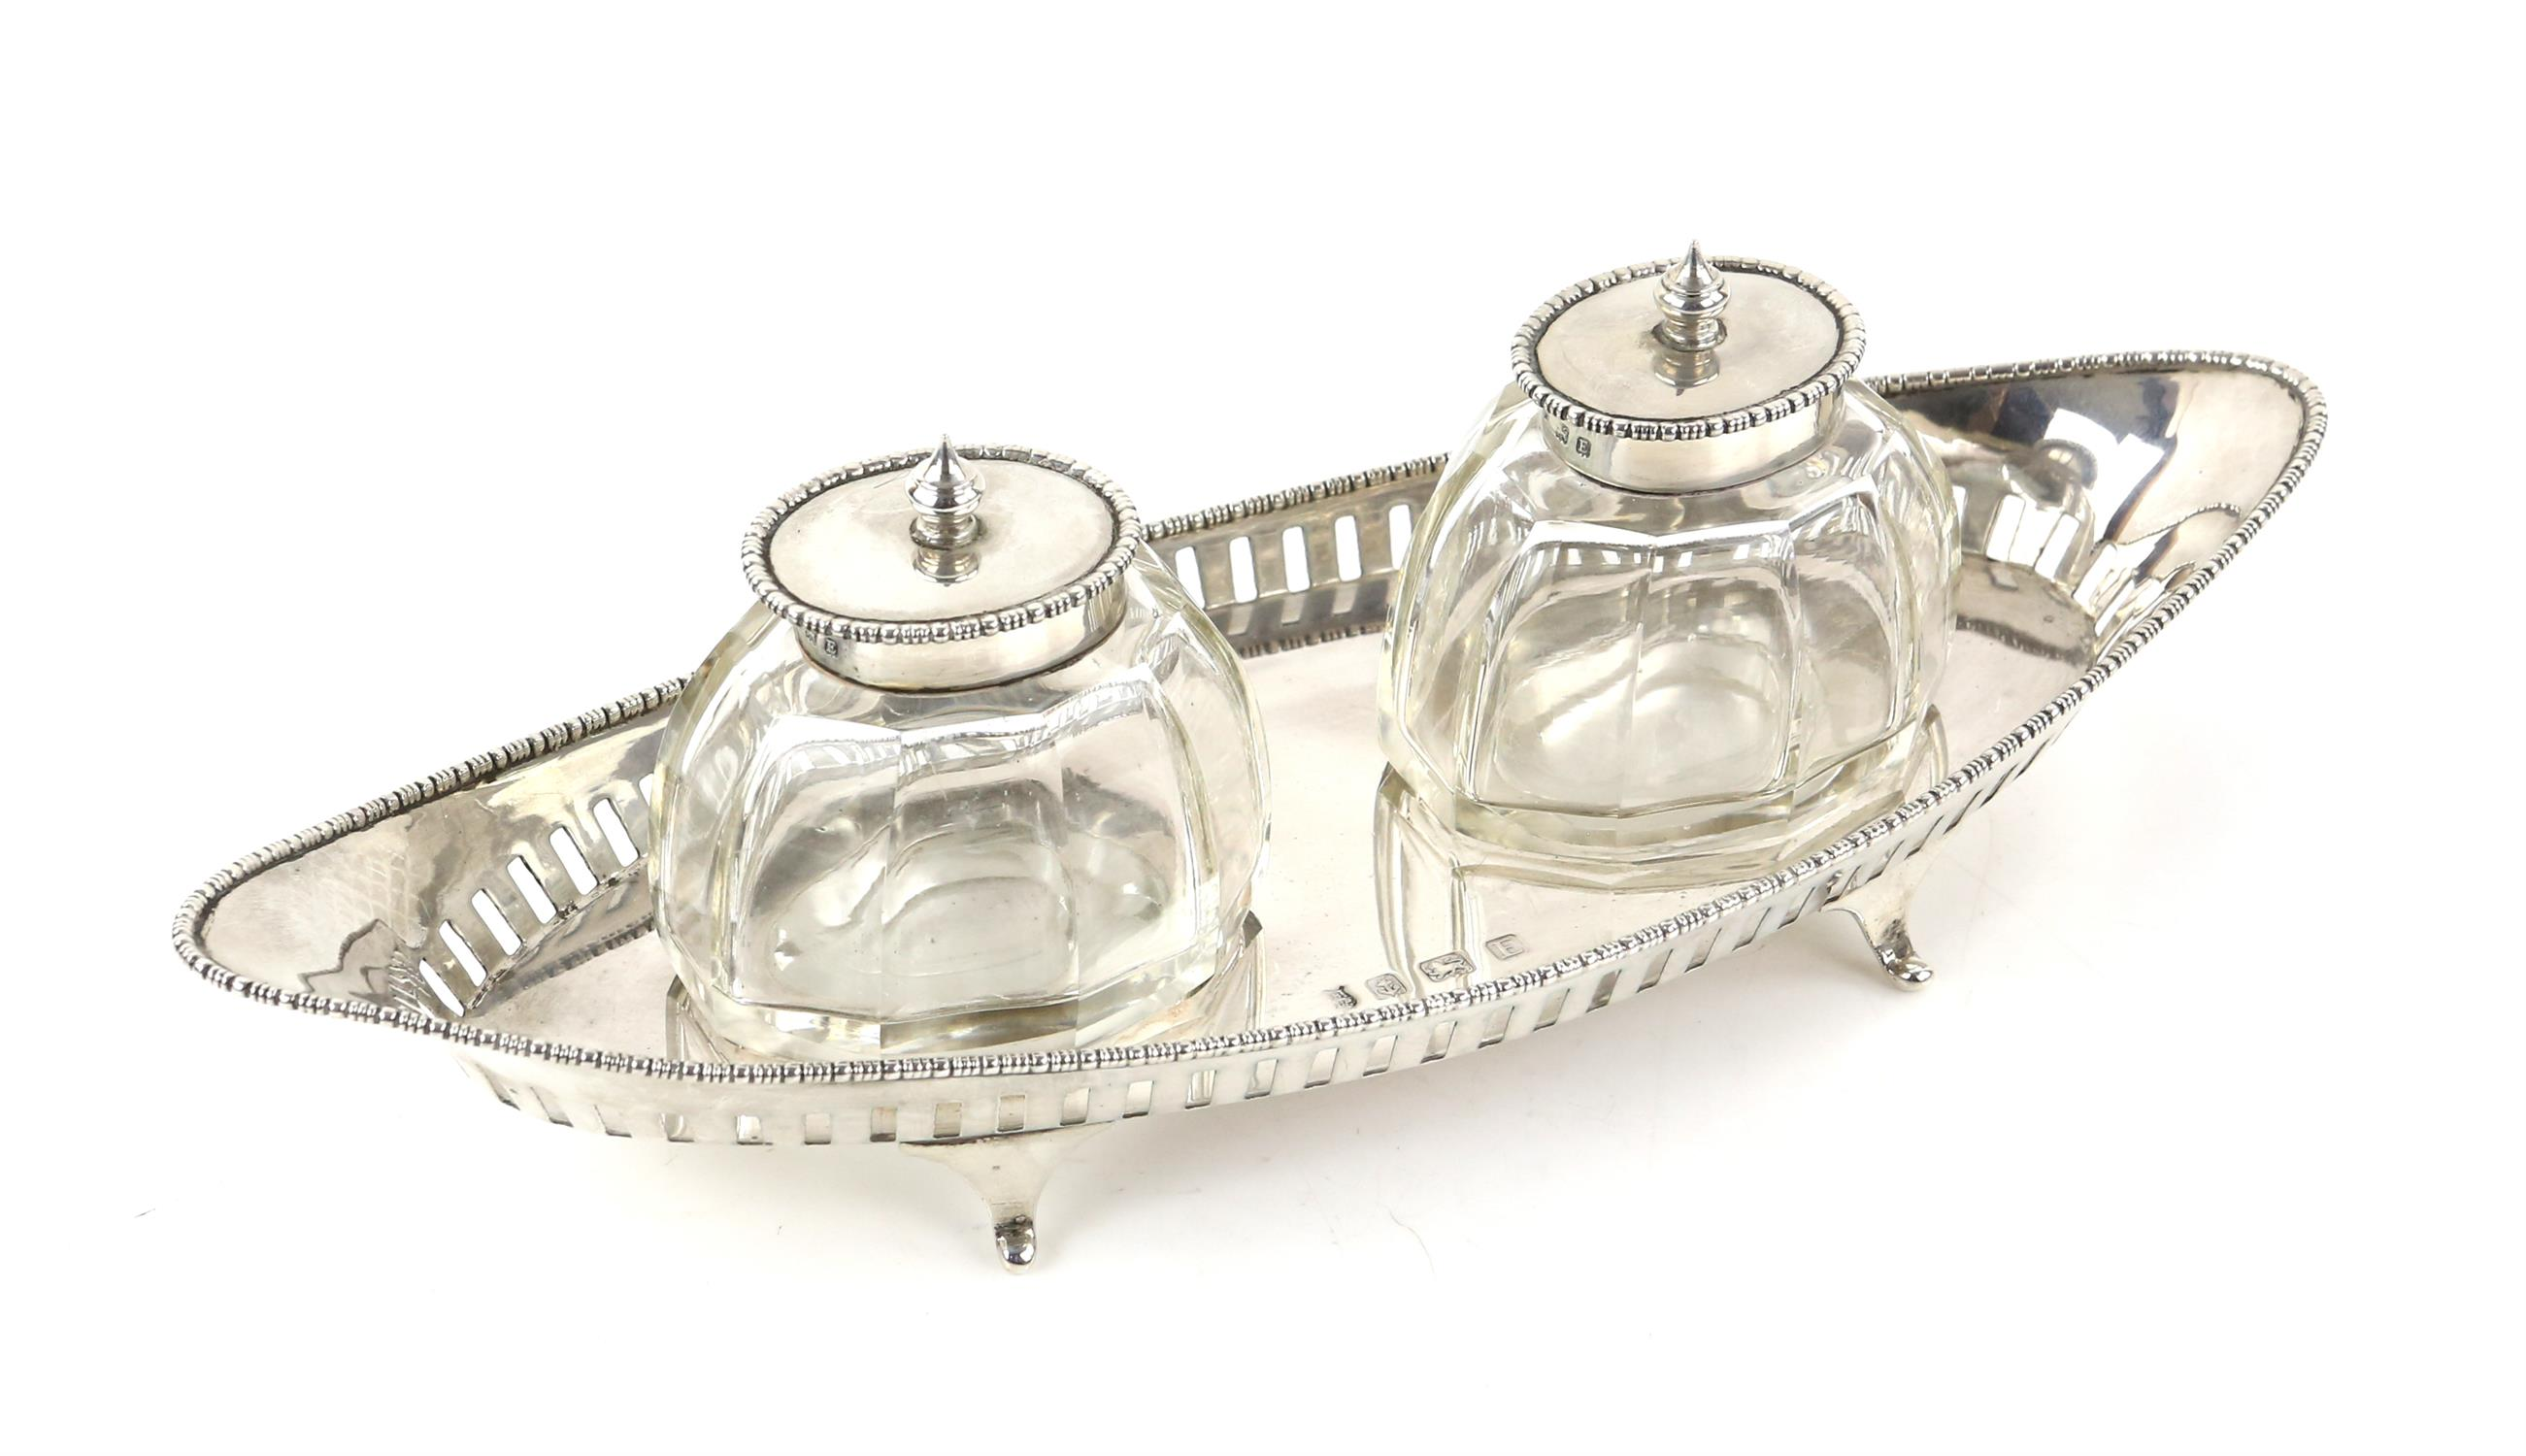 George V silver desk stand of eliptical form with two cut glass and silver mounted inkwells, - Image 2 of 8